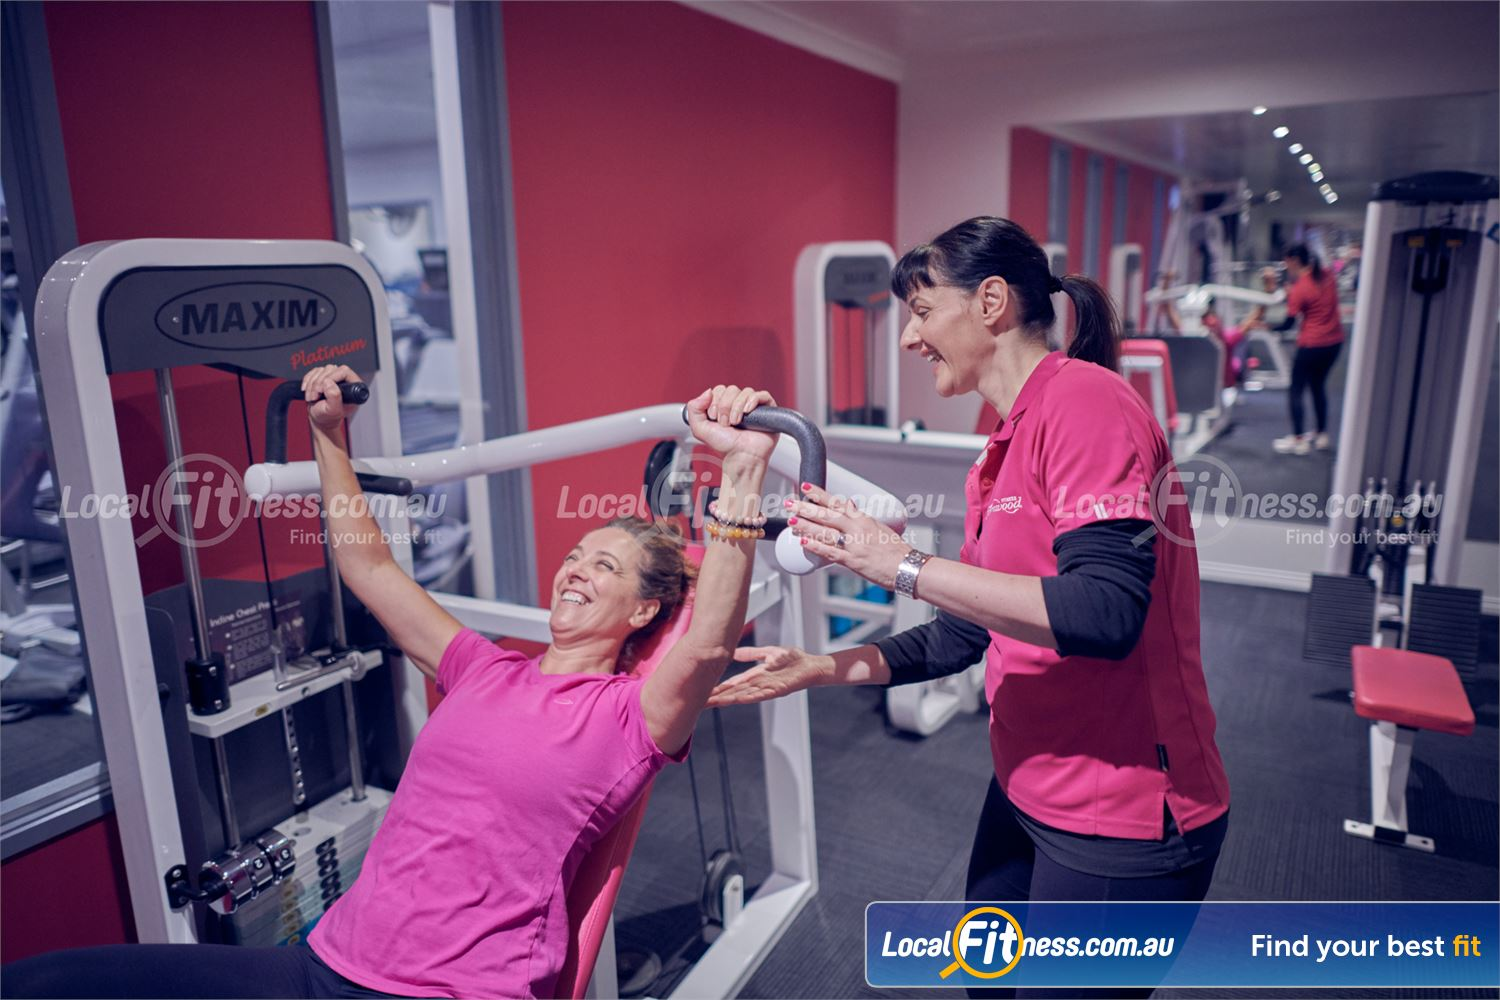 Fernwood Fitness Bulleen Our Bulleen gym team create programs specifically for womens needs.